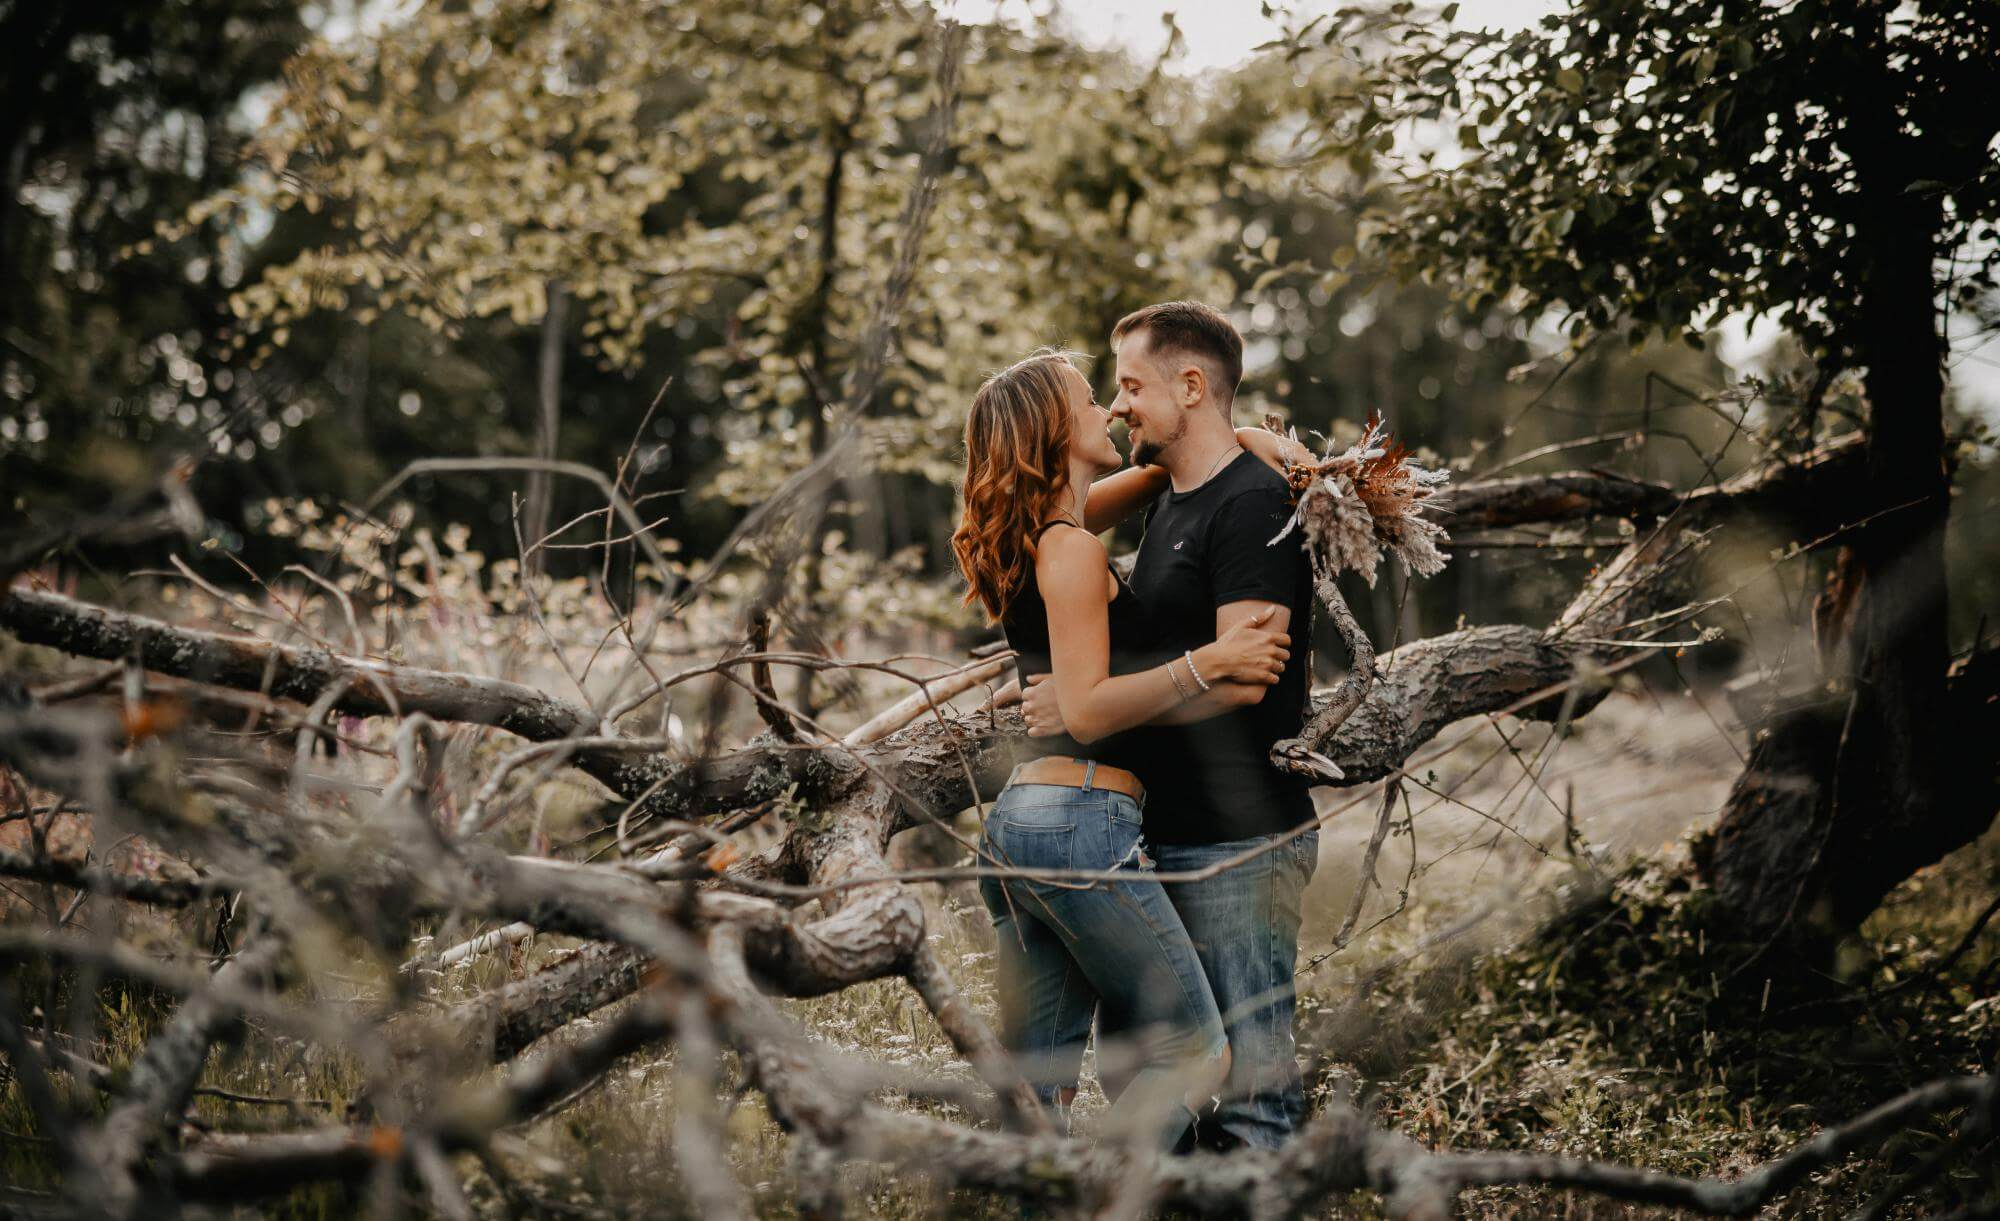 Paarshooting-Foto mit Details zu Paarshooting Forest und Couple